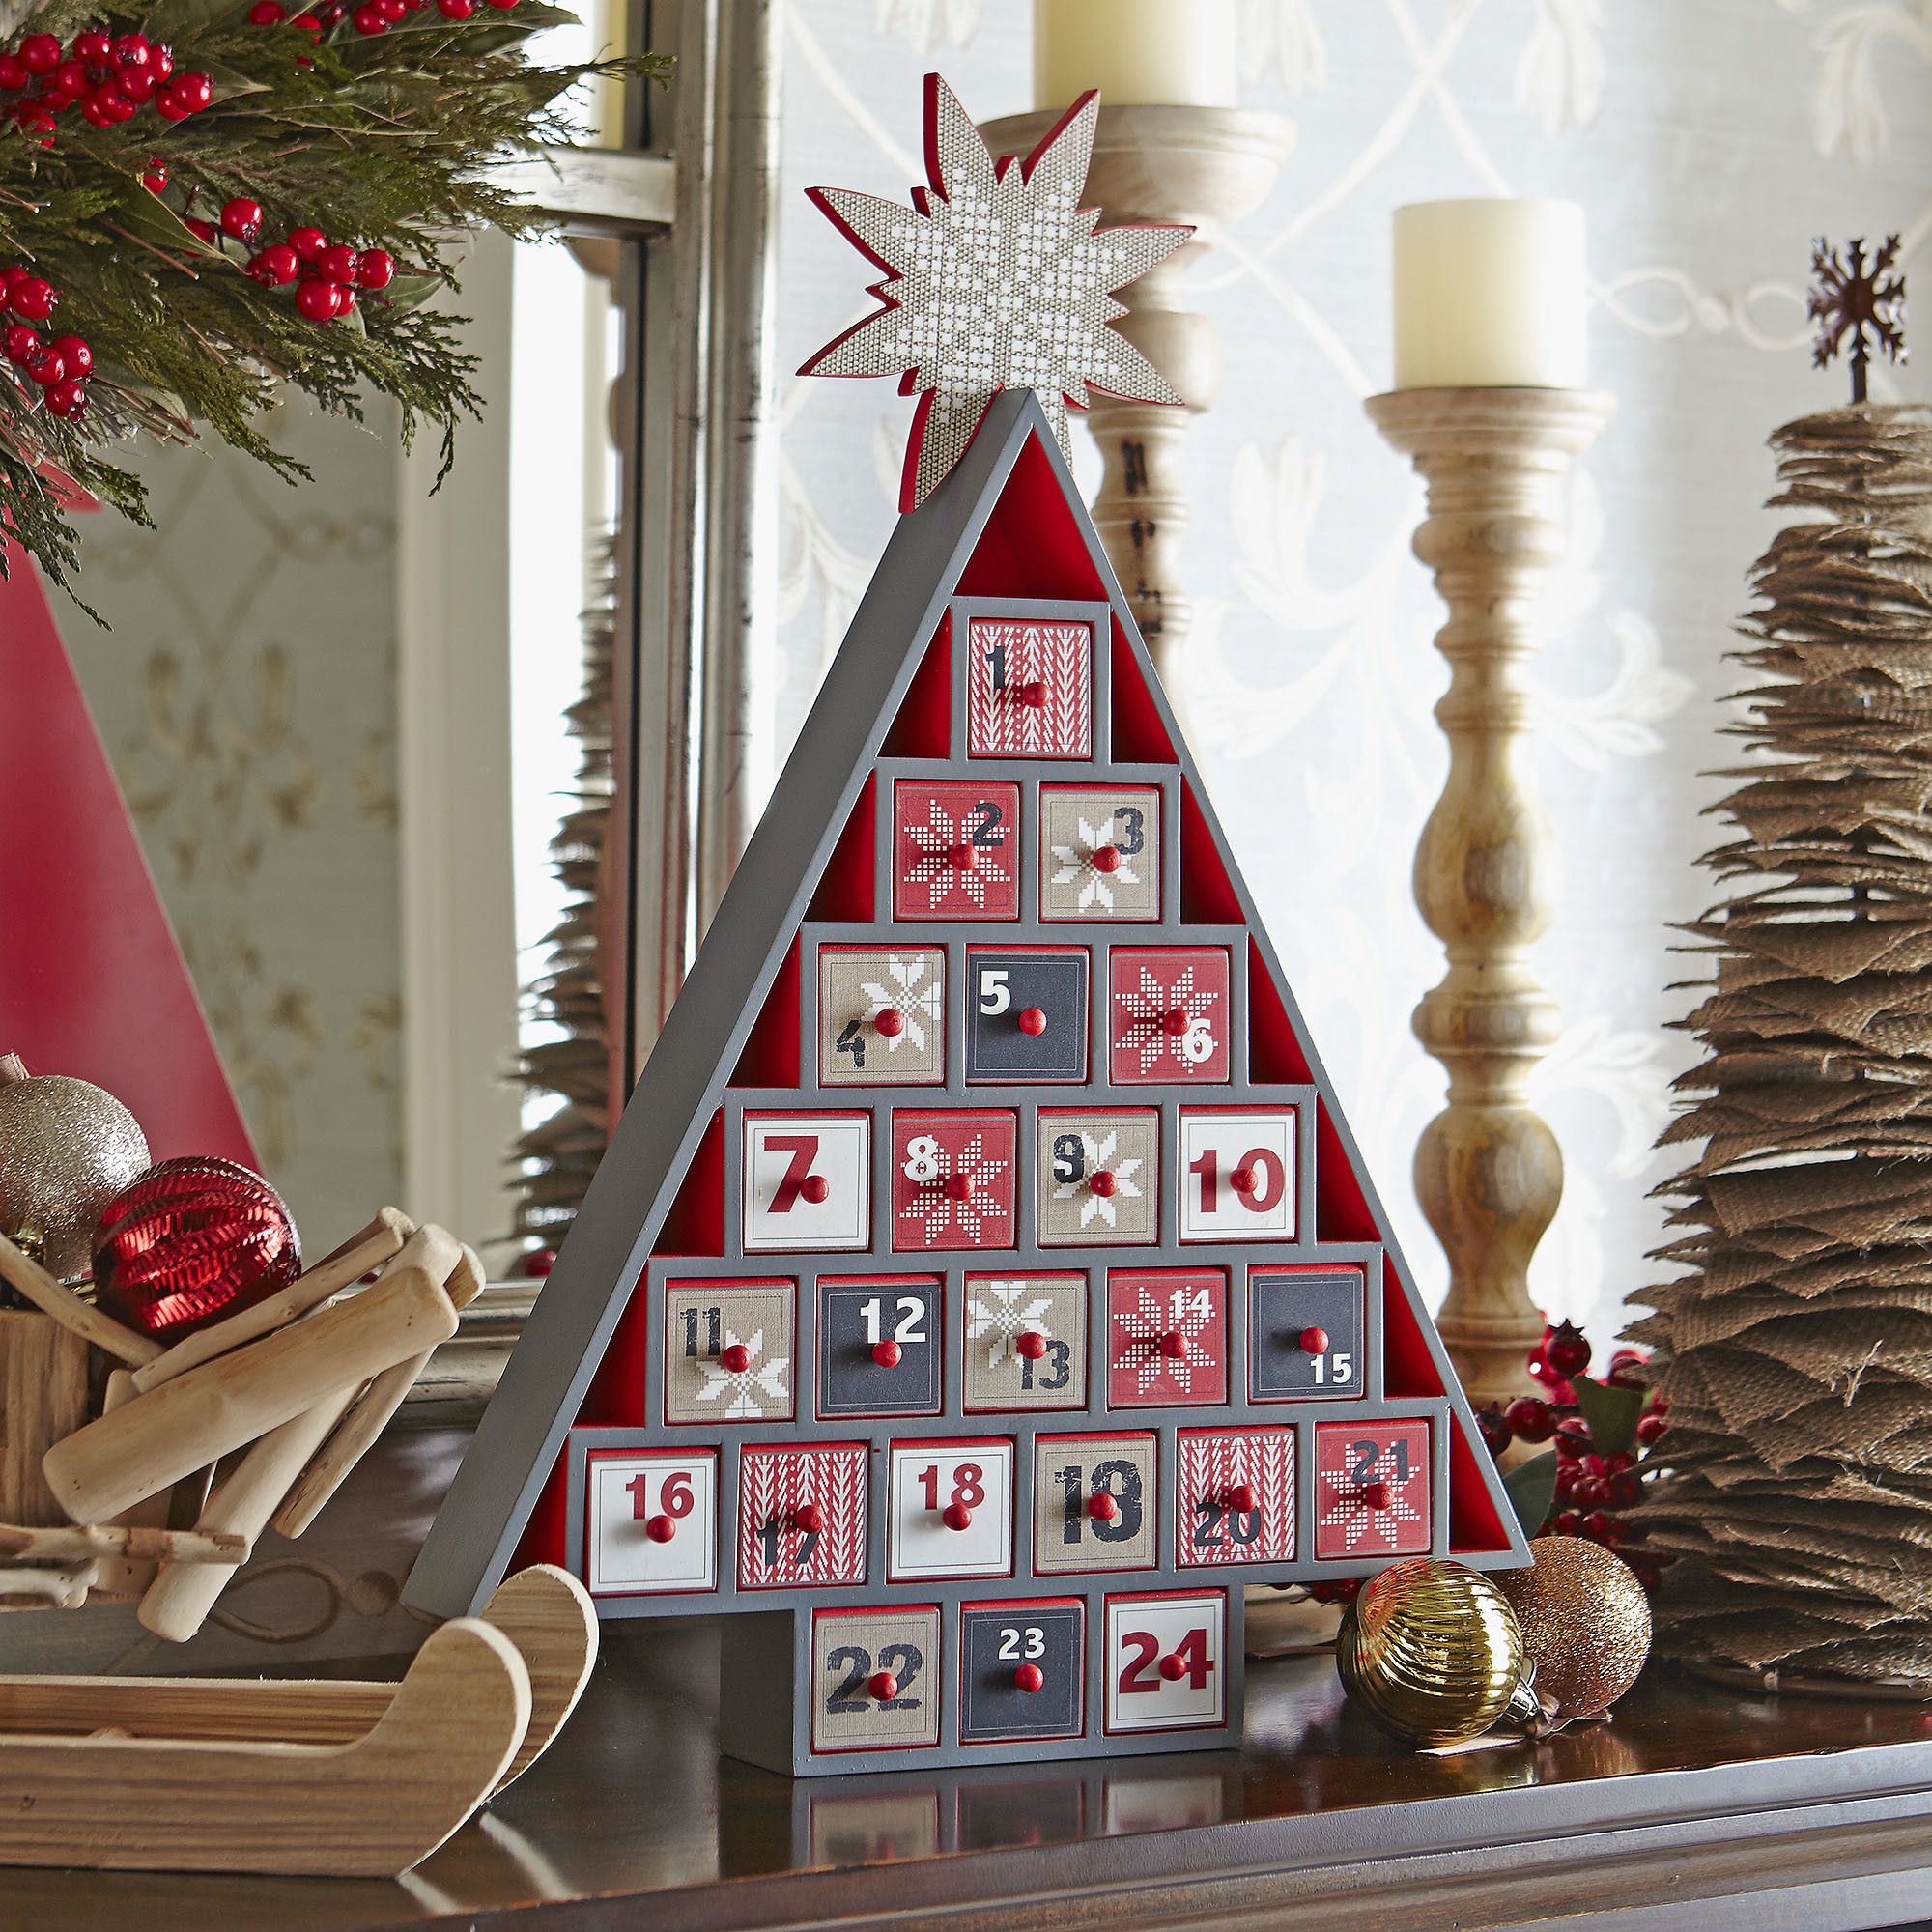 Advent Calendar Tree - Count Down The Days To Christmas